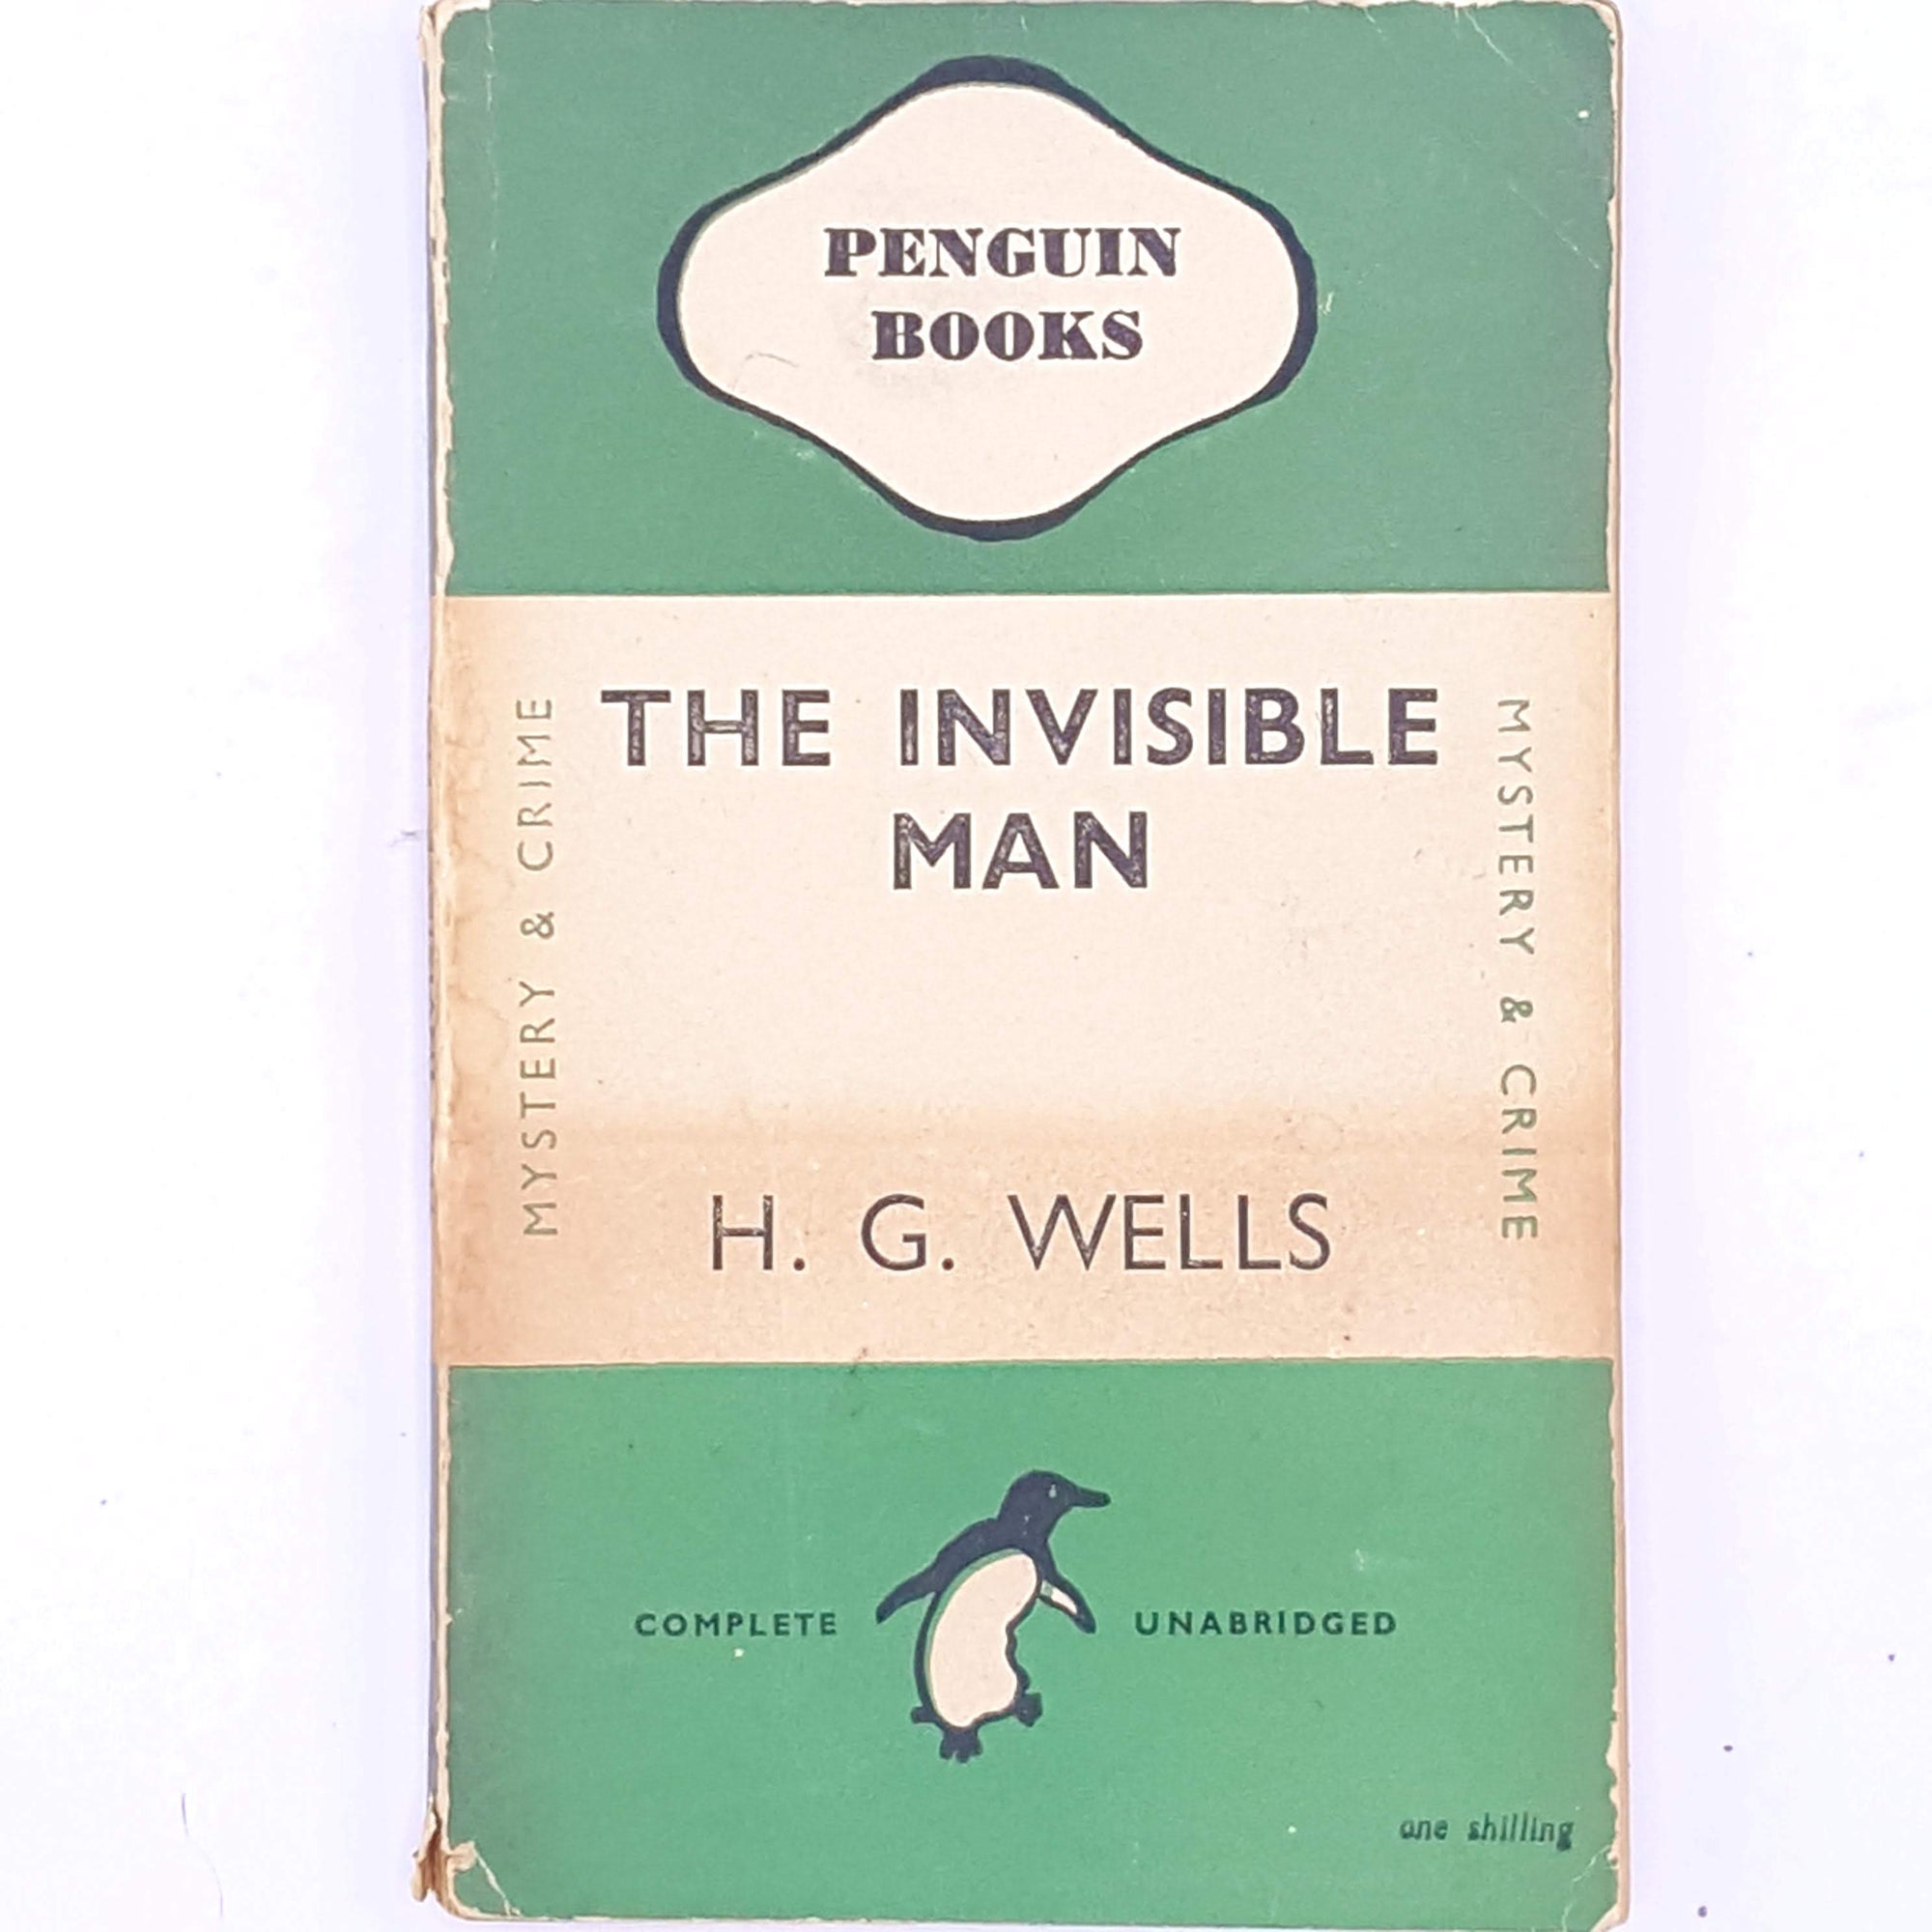 Penguin, H.G. Wells, The Invisible Man, 1946